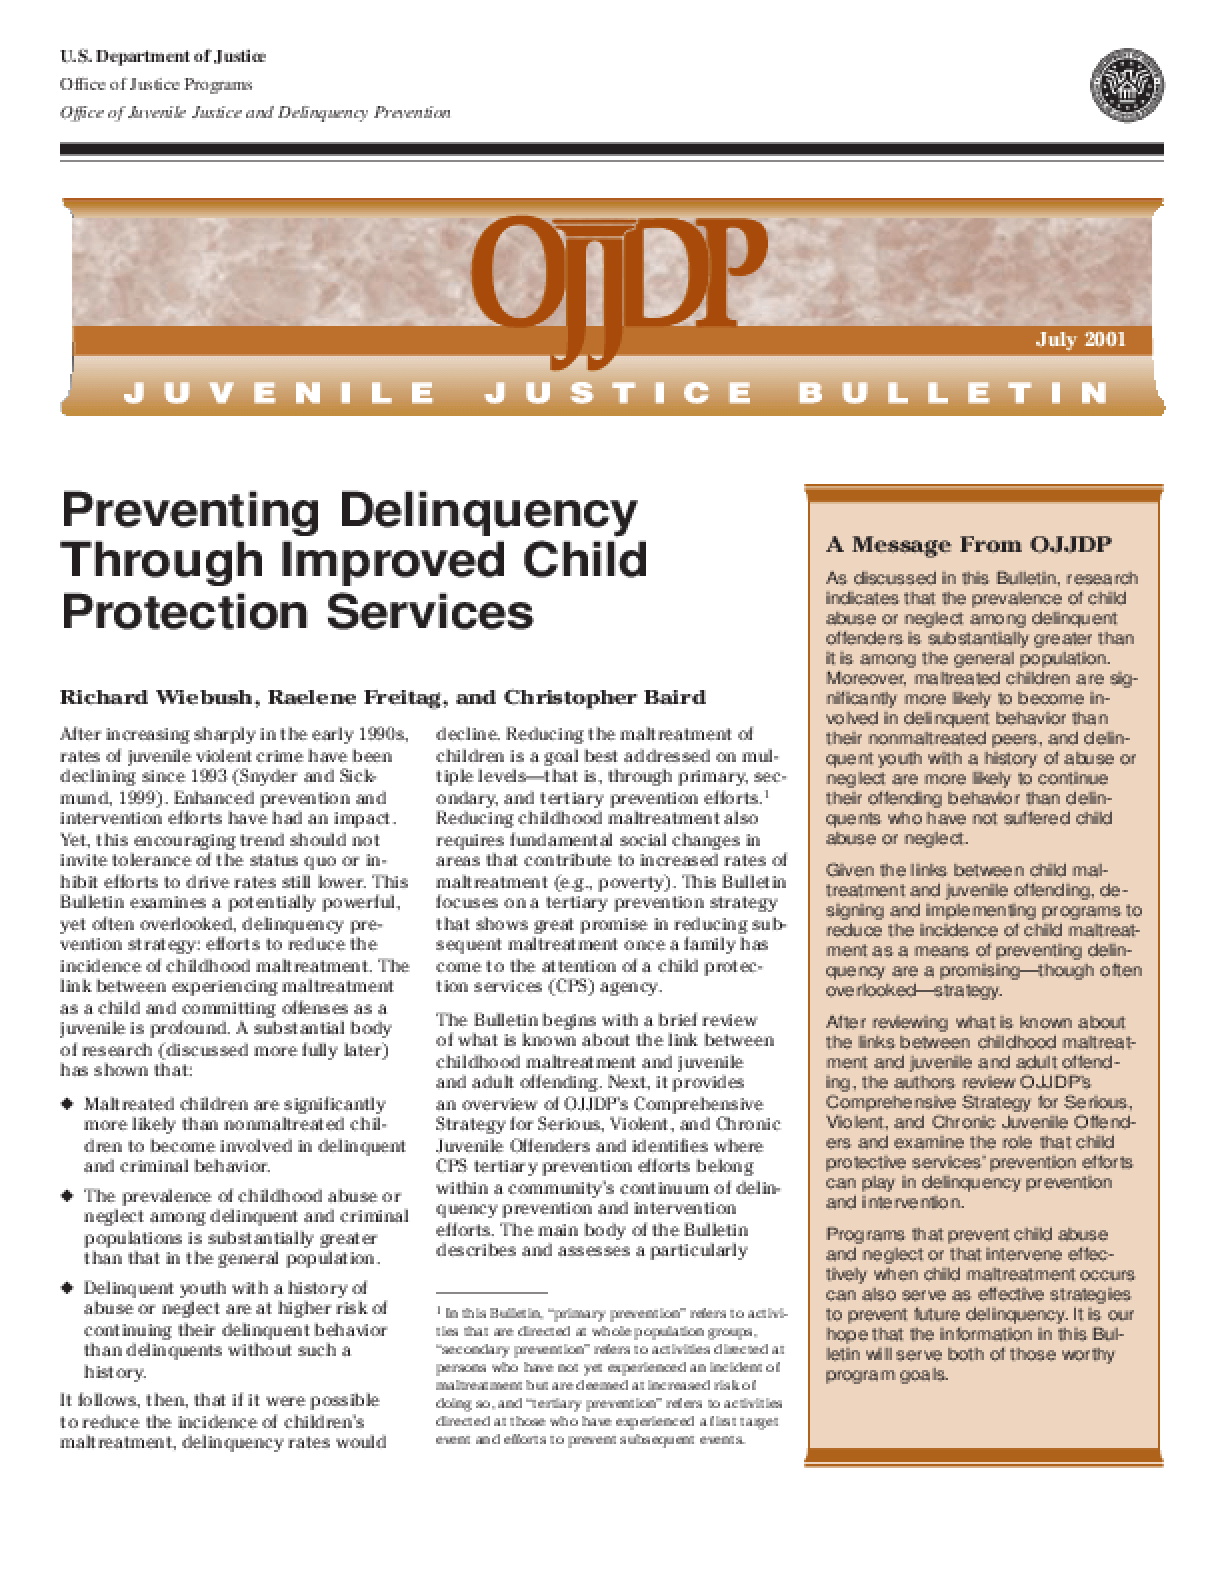 Preventing Delinquency Through Improved Child Protection Services